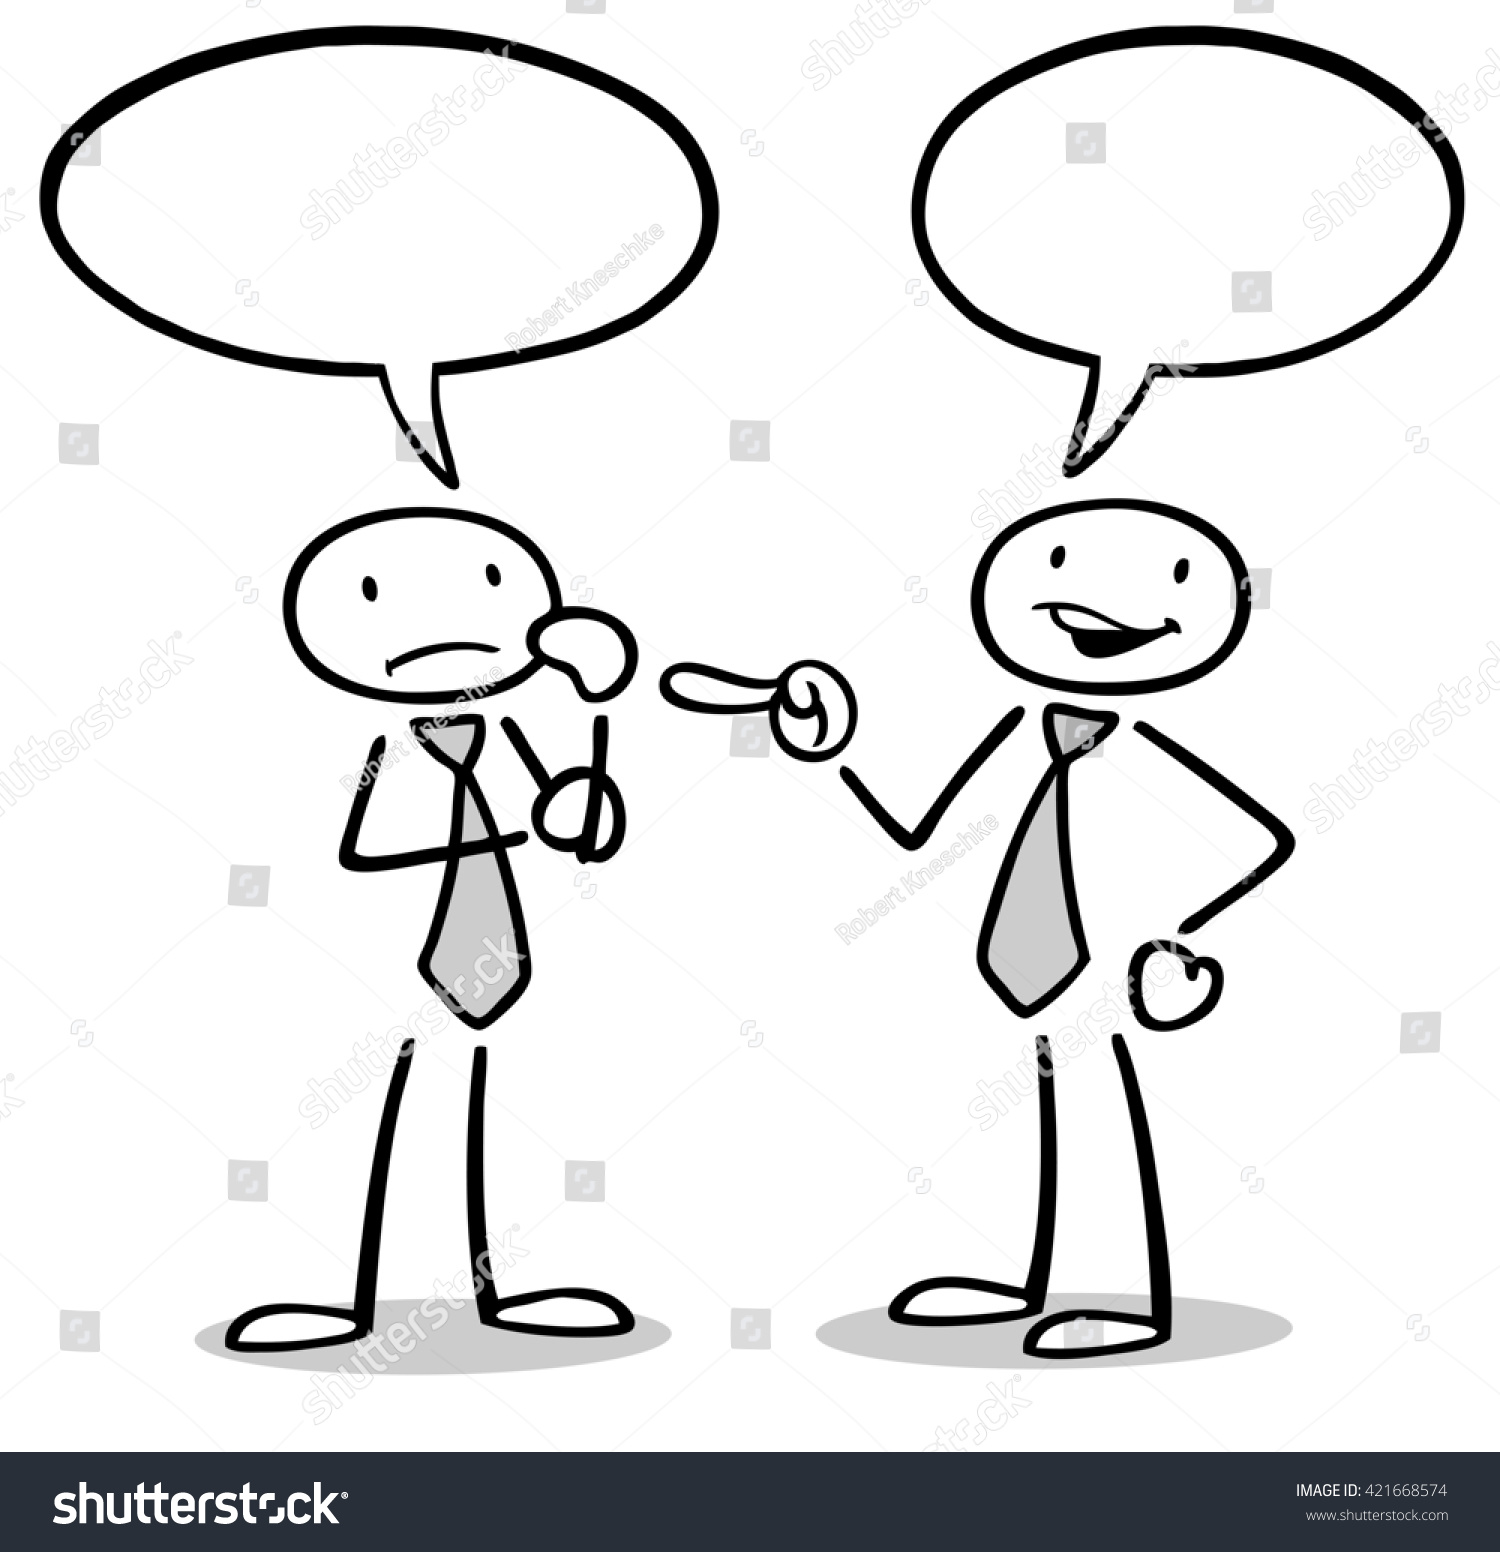 STRONG Communication ppt |Communication Between People